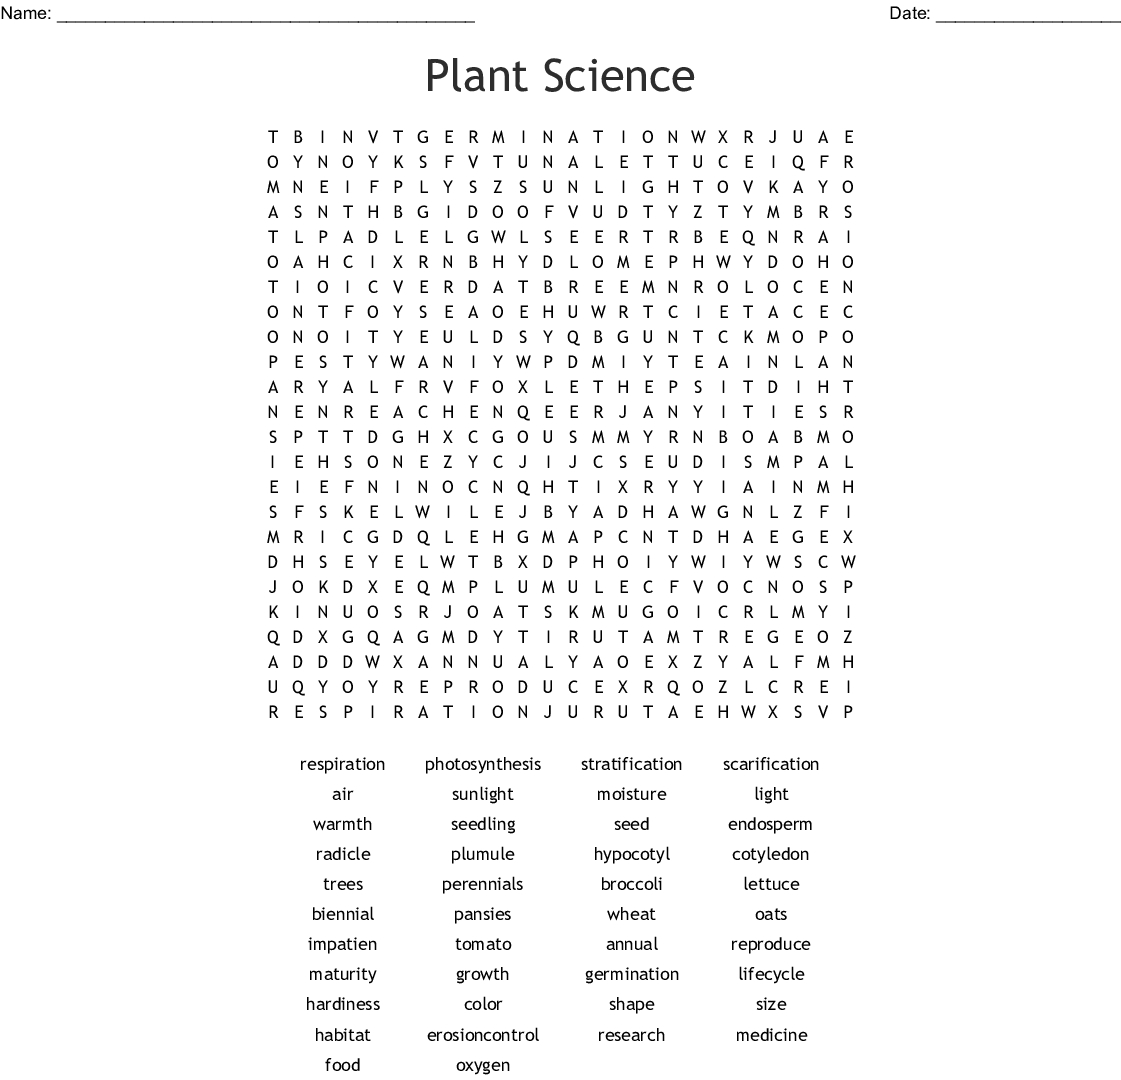 Plant Science Word Search - Wordmint